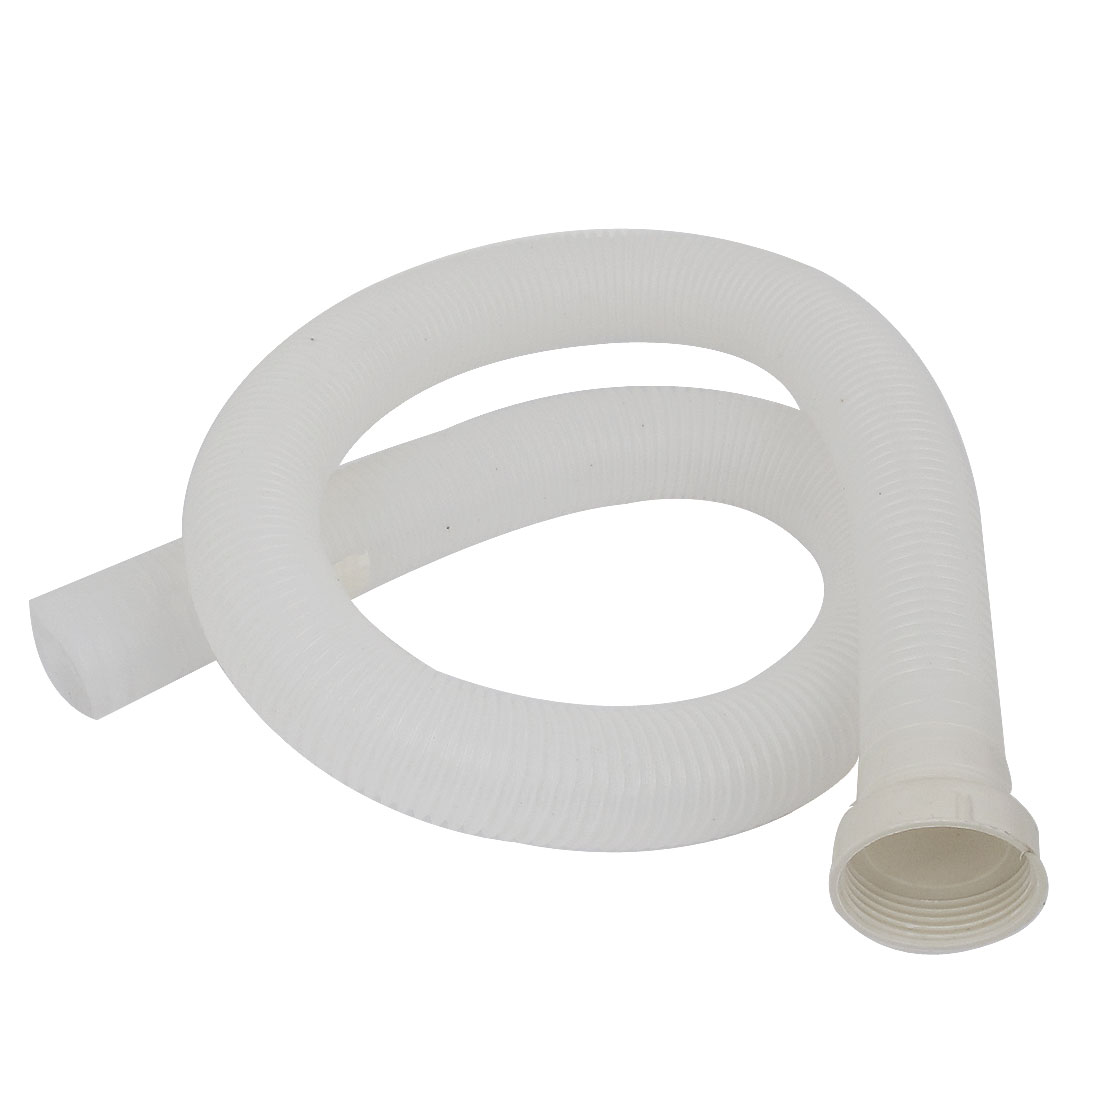 Washer Washing Machine Washbowl Plastic Water Drain Hose Pipe 100cm Long White